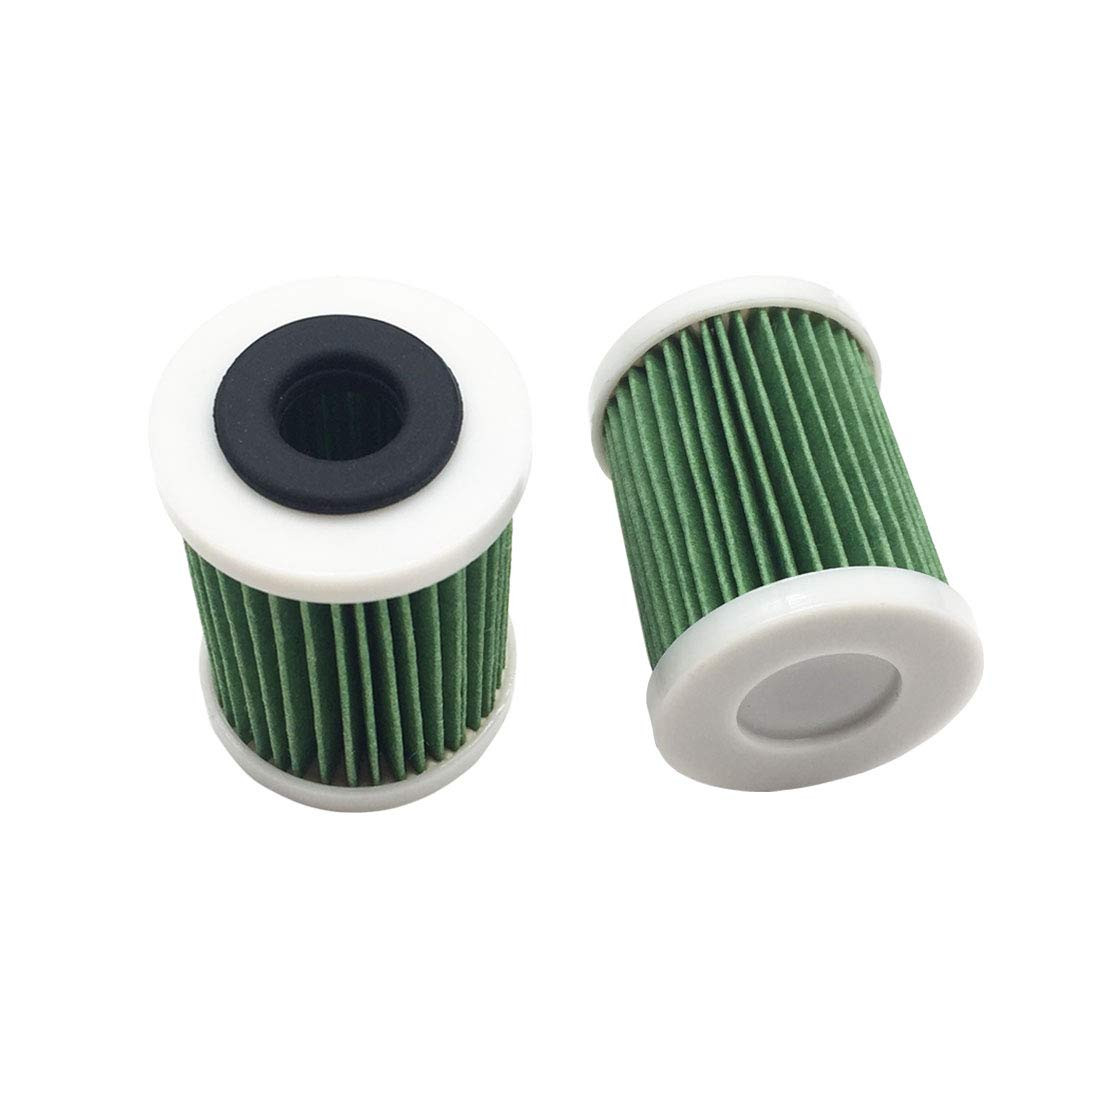 2 Pcs 6P3-WS24A-01-00 6P3-WS24A-00-00 Fuel Filter Element Replacement for Yamaha Marine F150 LF150 VF200 VF225 VF250